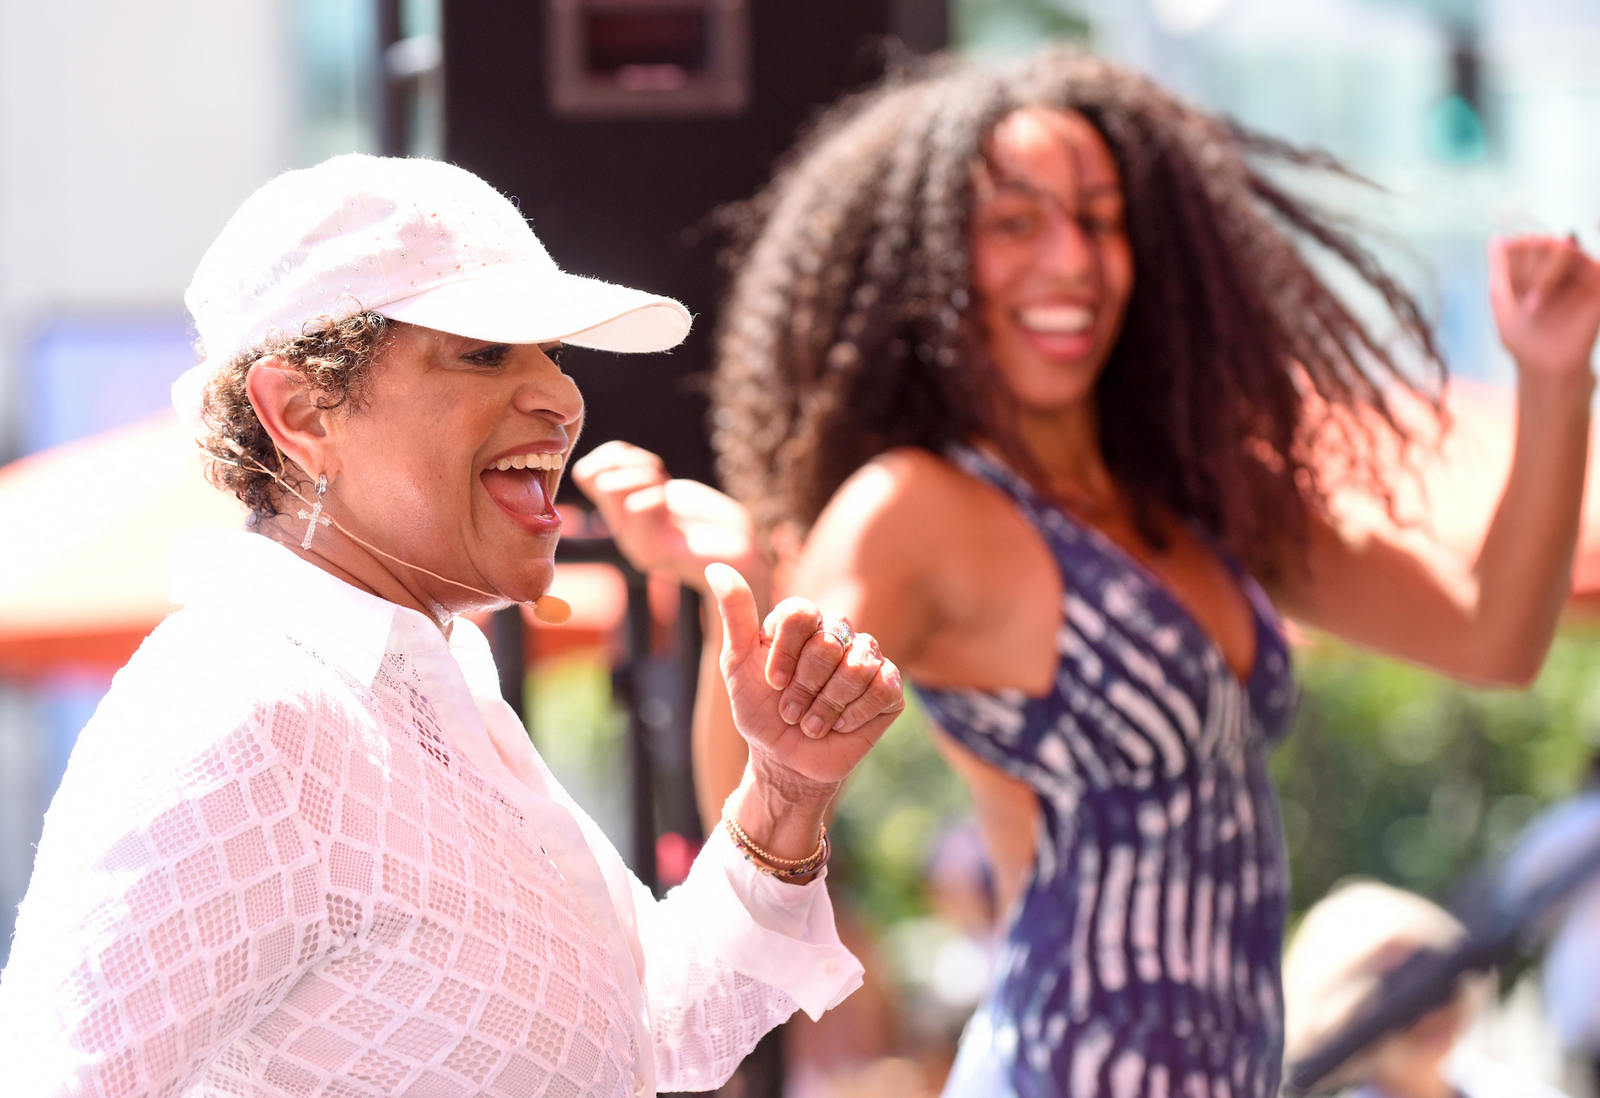 Dance Sundays with Debbie Allen and Friends. Salsa featuring Debbie Allen.